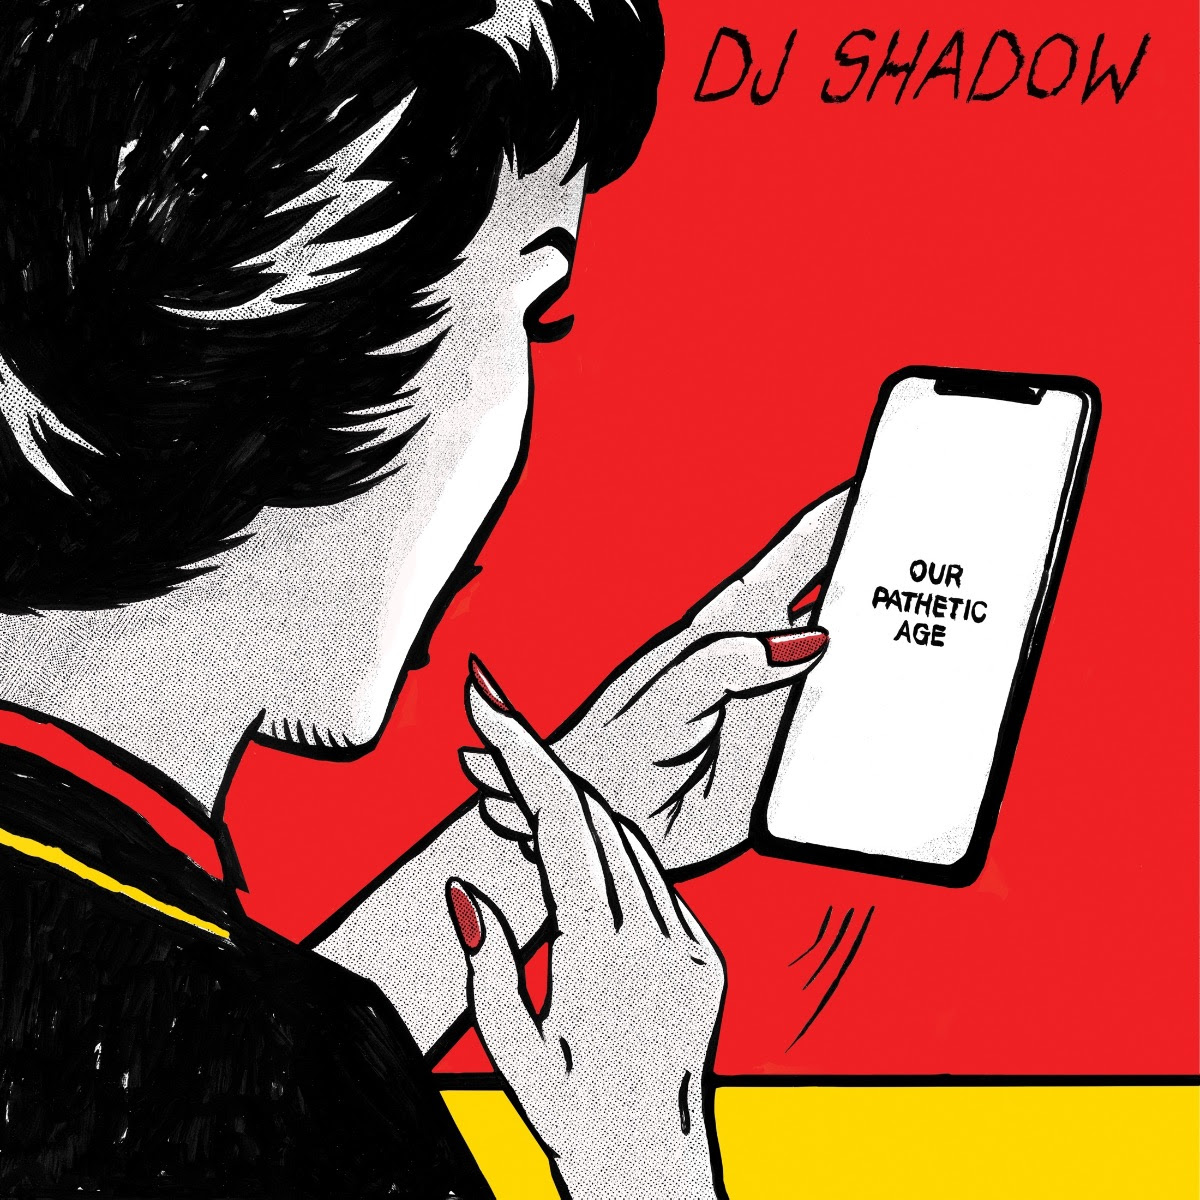 Listening Party: DJ Shadow's Our Pathetic Age